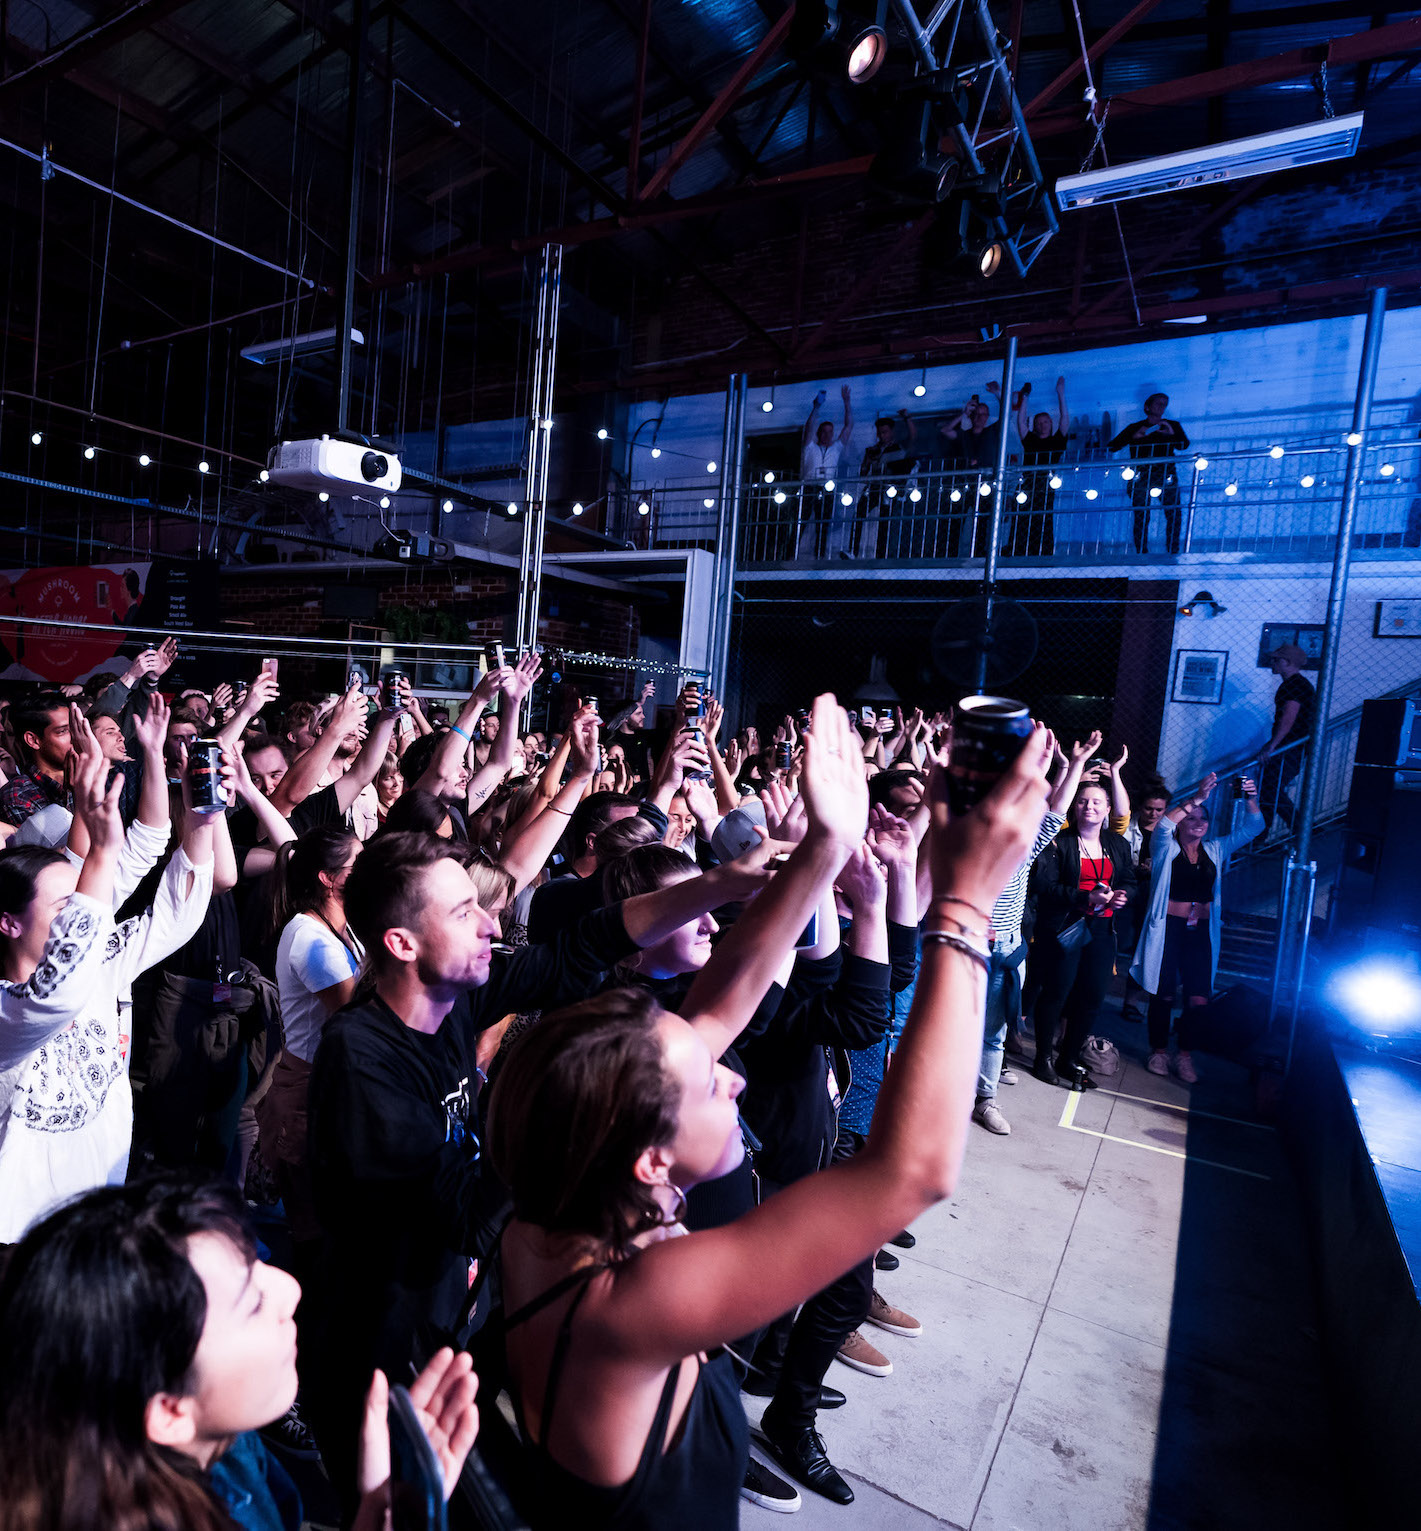 Party goers stand in the crowd with their arms in the air.